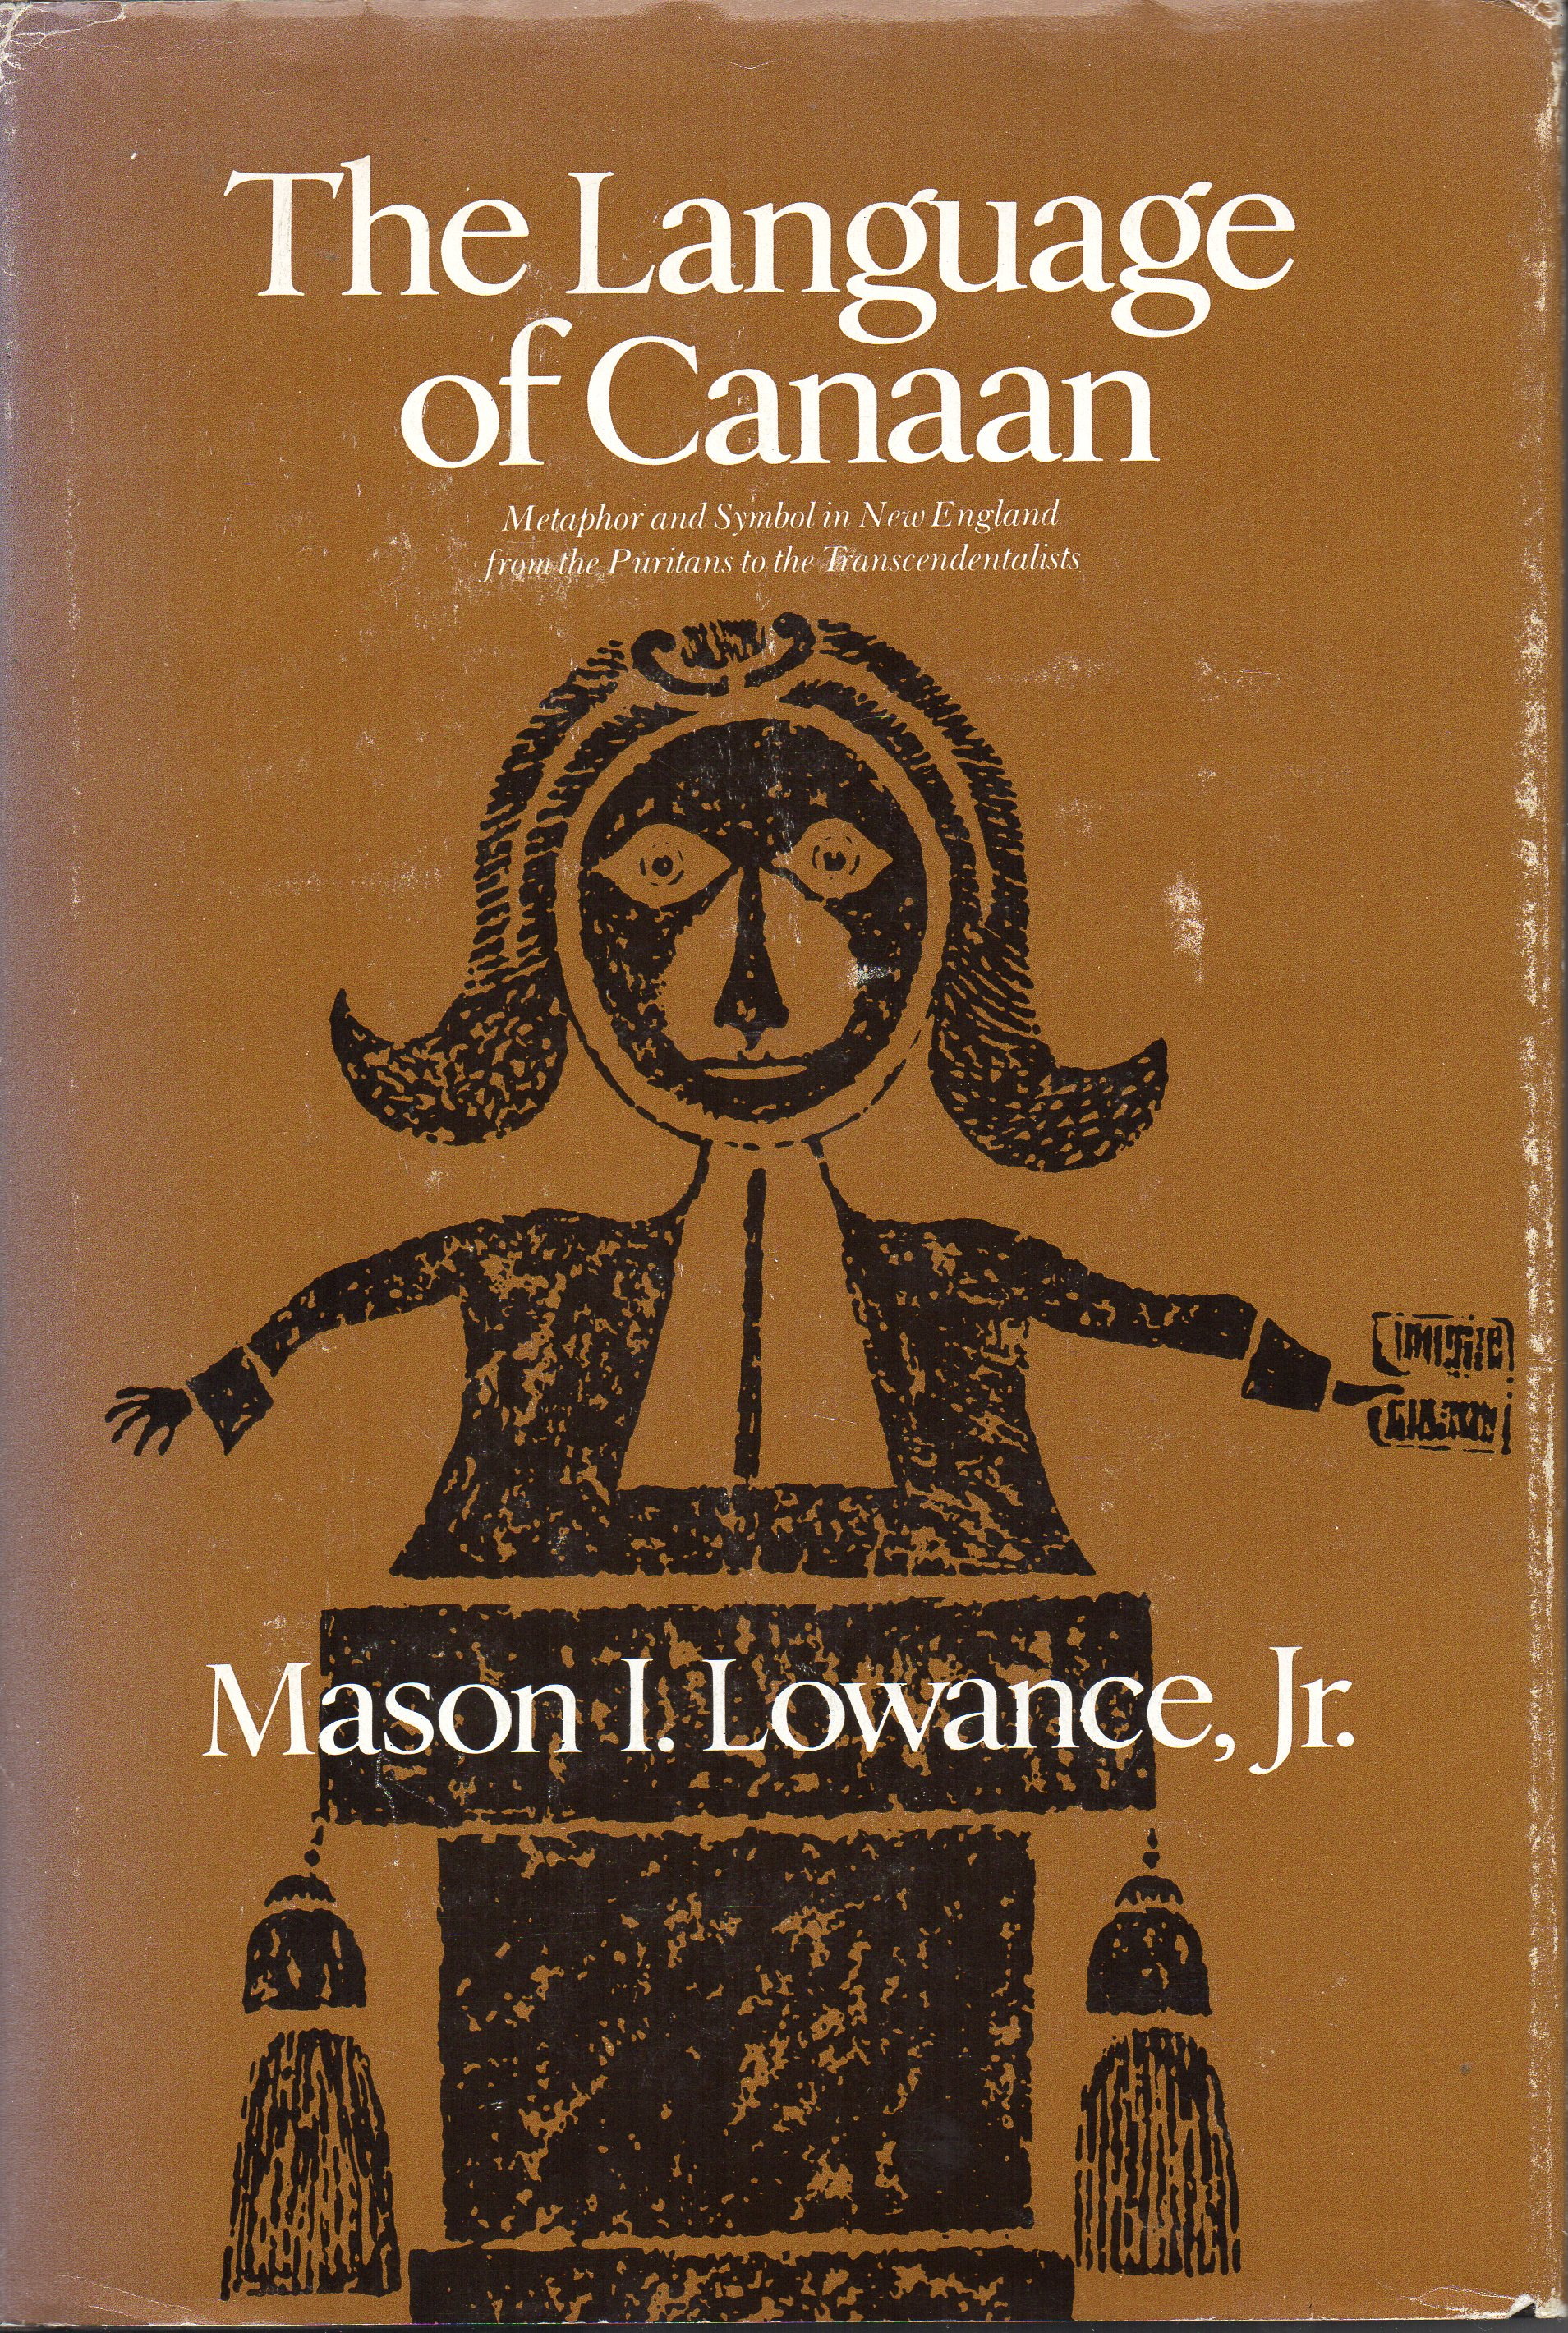 Image for The Language of Canaan: Metaphor and Symbol in New England from the Puritans to the Transcendentalists